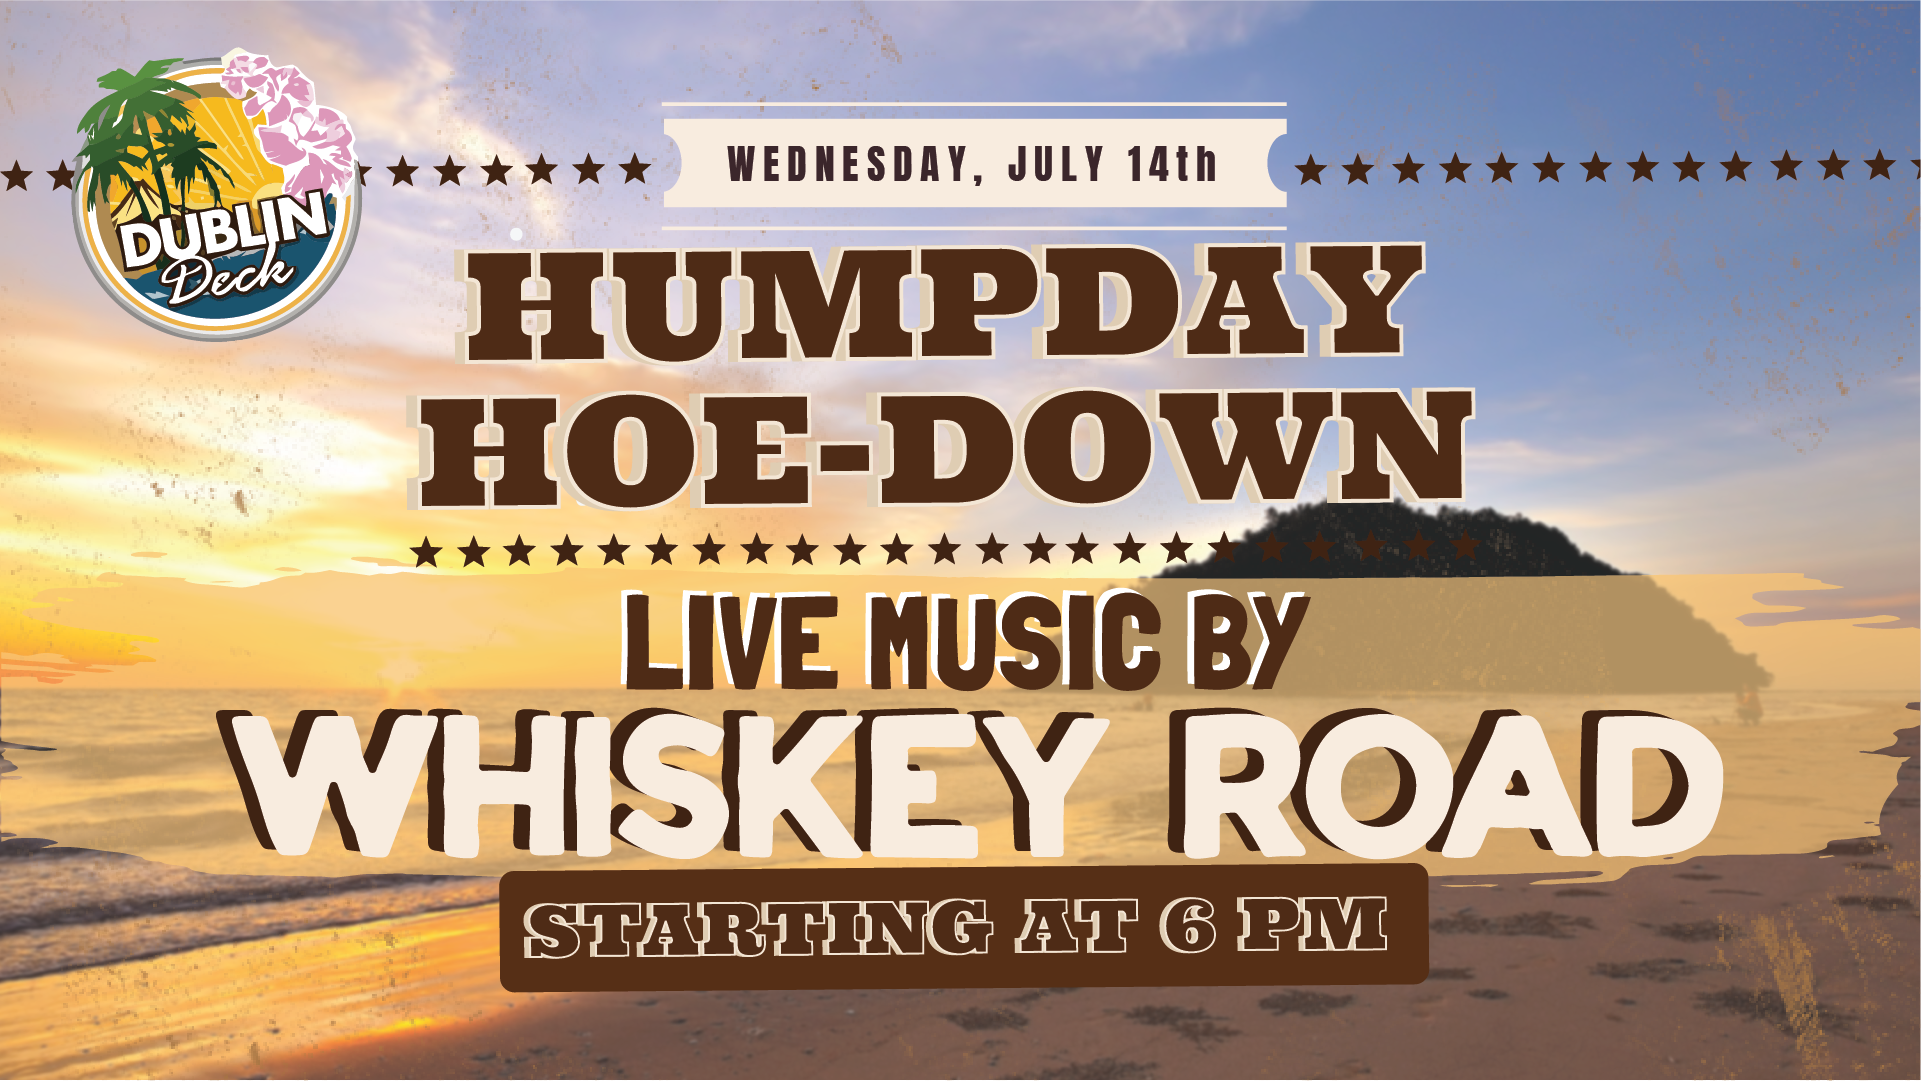 Wednesday July 14th with Whiskey Road 6:00 PM